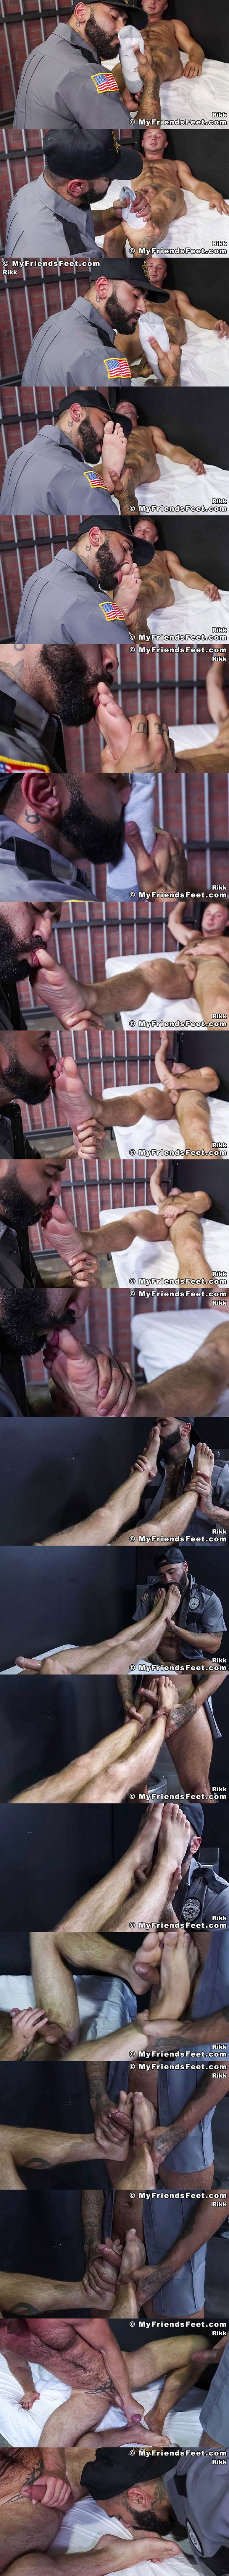 Myfriendsfeet - newcomer Chad Tyler (aka Chad Taylor) gets his sweaty socks and bare feet worshiped by bearded porn star Rikk York before Rikk fucks Chad's feet in Guard Rikk Owns Chad's Feet 02